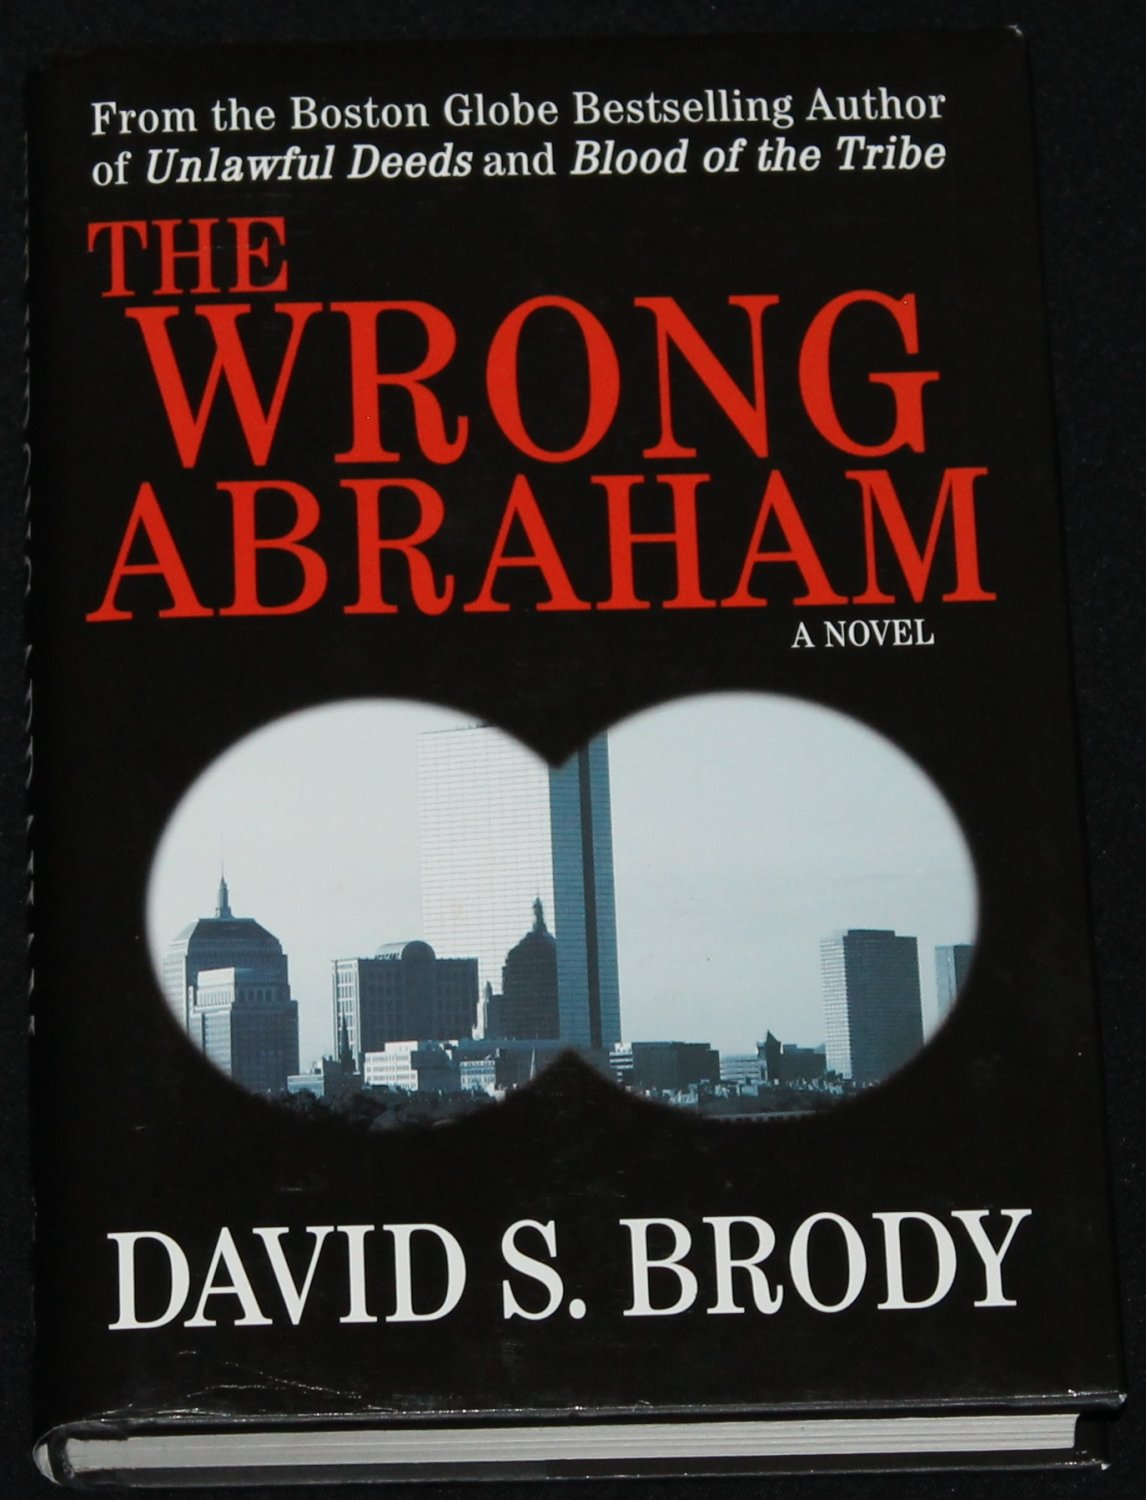 The Wrong Abraham - thriller novel hardcover book by David S. Brody